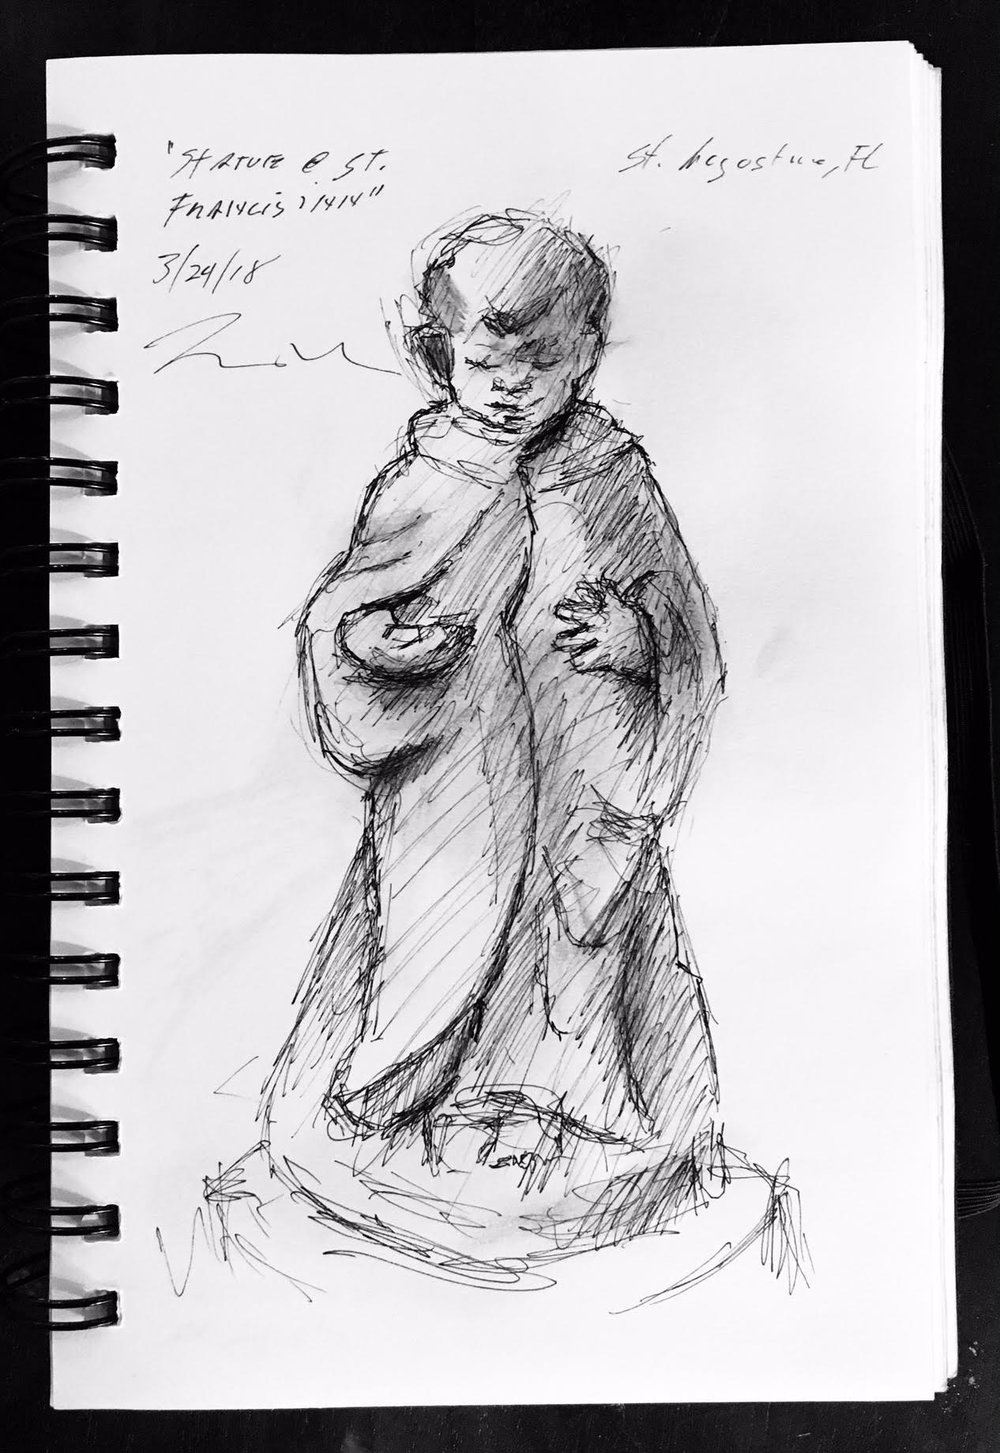 Demonstration Sketch by Brian Bomeisler